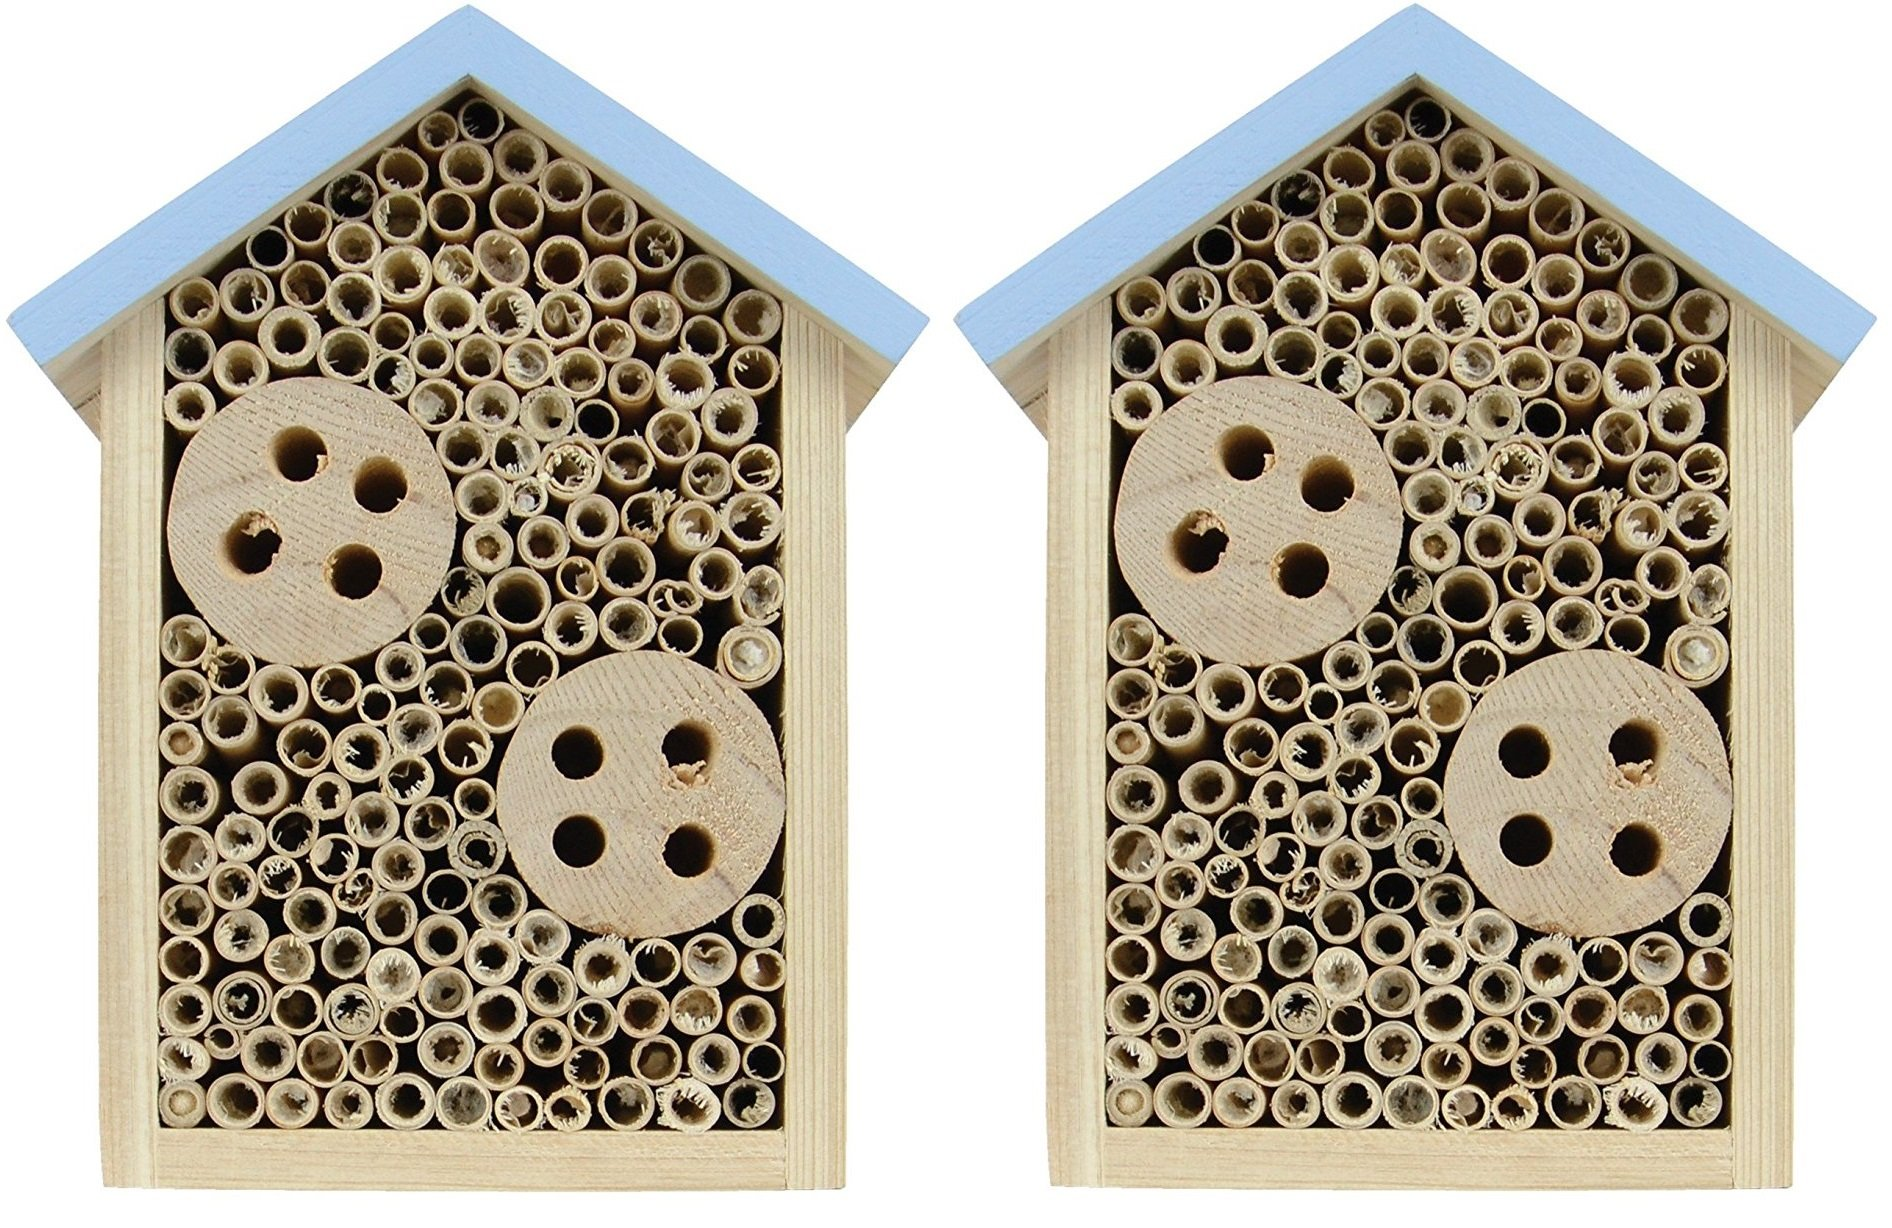 (2 Pack) Nature's Way Bird Products Better Gardens Beneficial Insect House for Pollinators by Nature's Way Bird Products